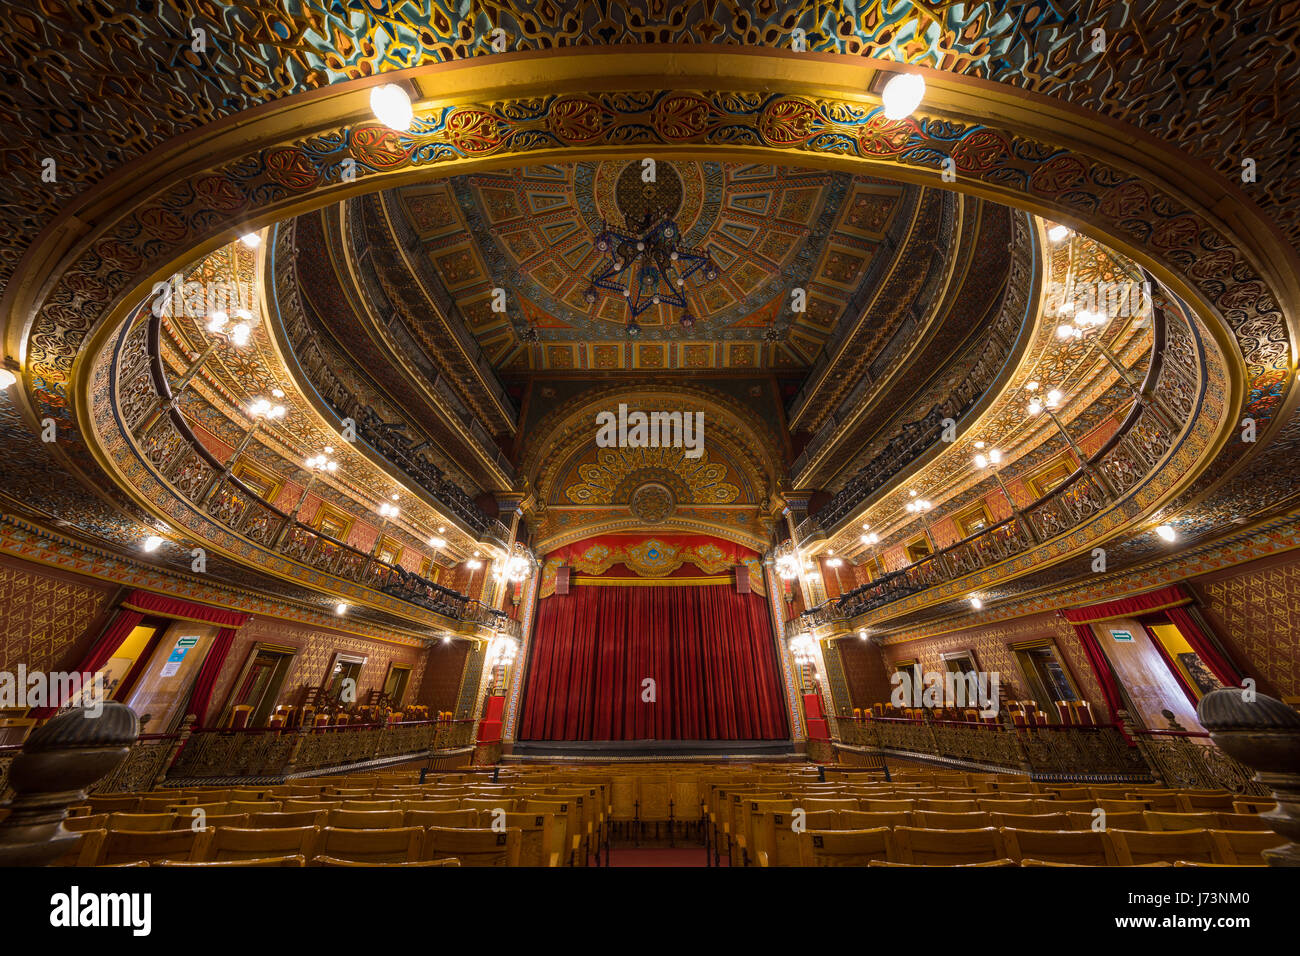 The Teatro Juarez is one of the most architectural stunning buildings in Guanajuato. - Stock Image